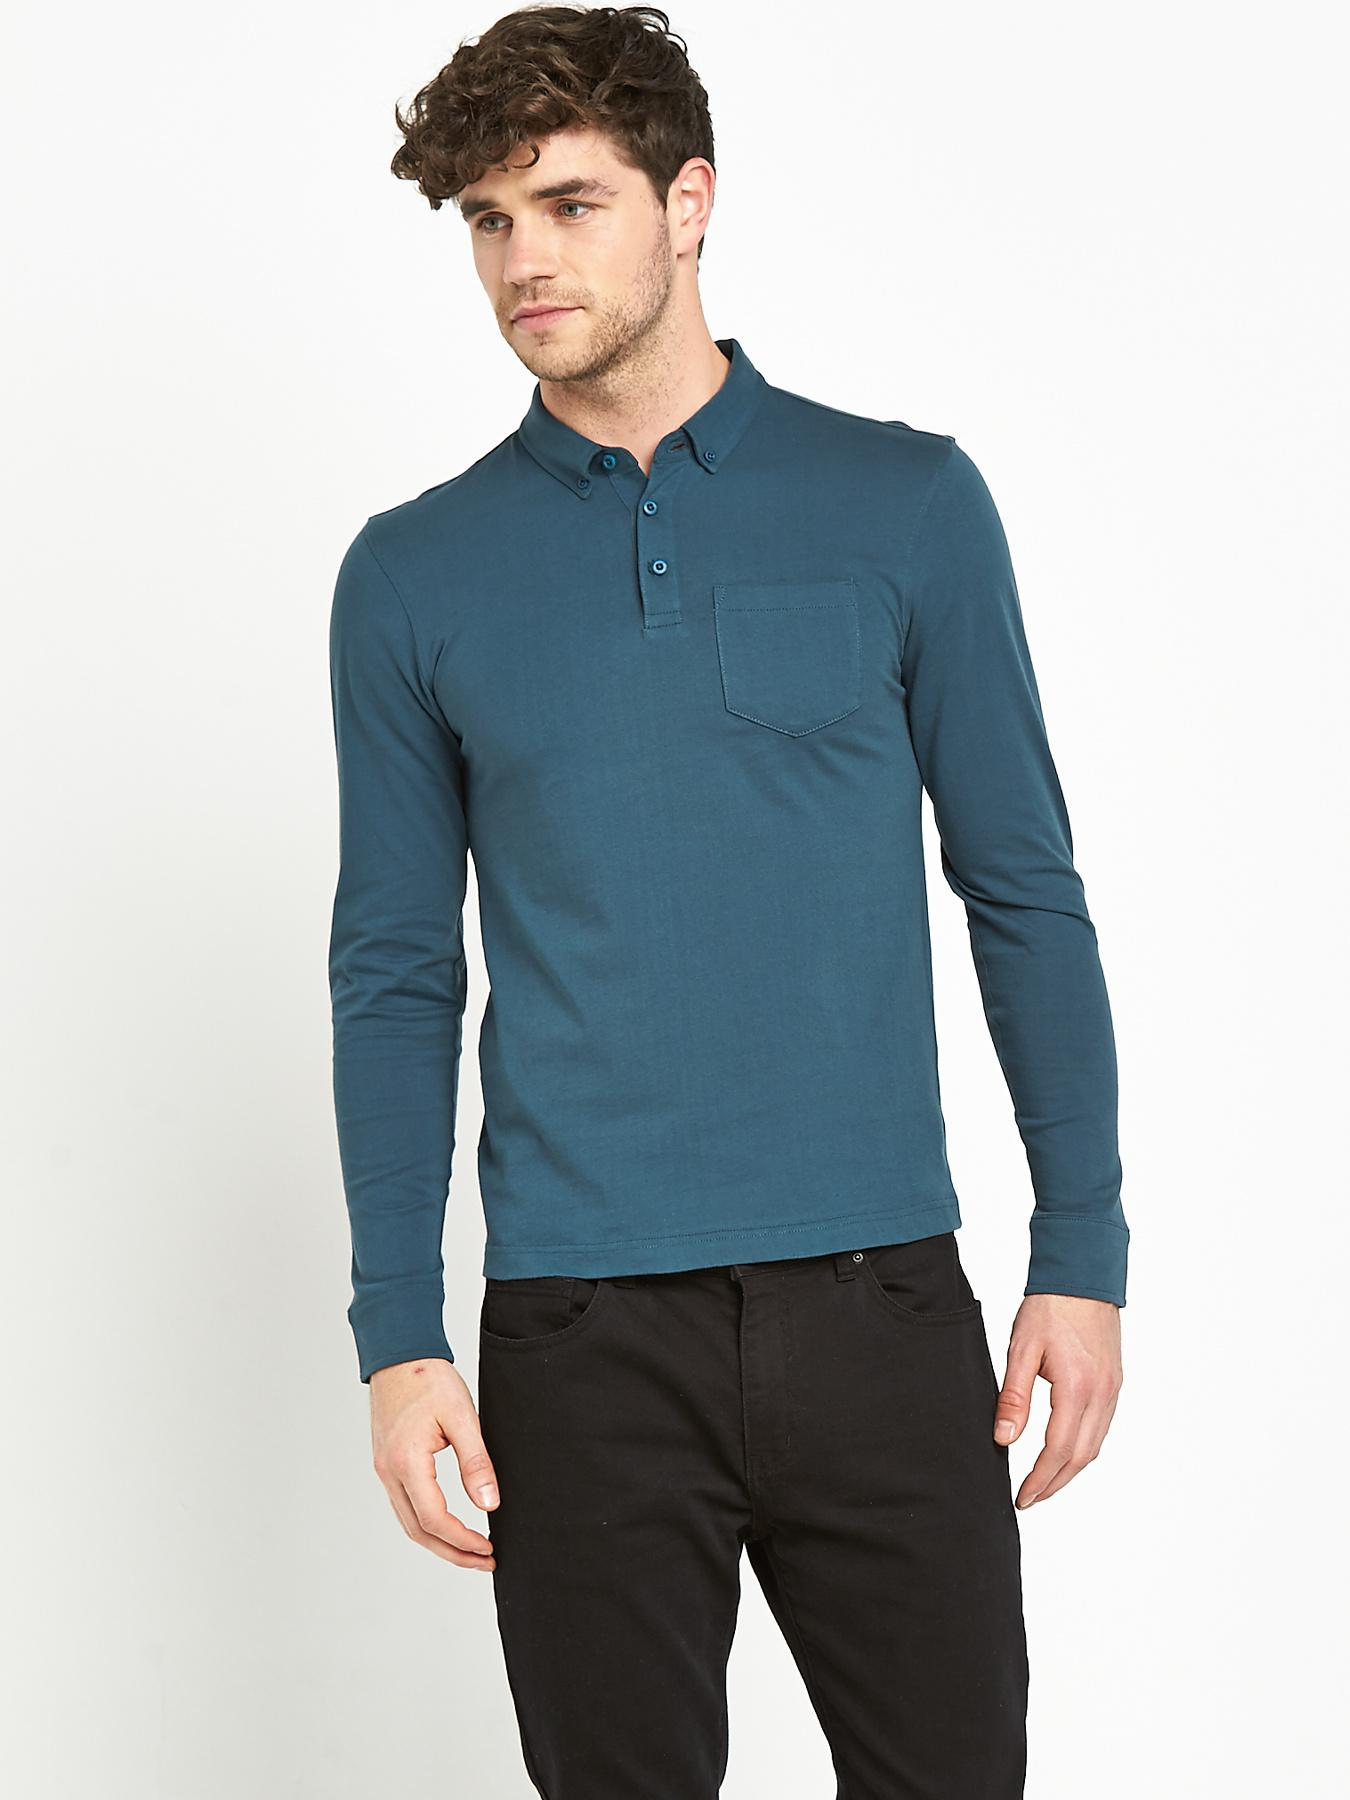 Mens Long Sleeve Slim Fit Jersey Polo Top, Petrol at Littlewoods